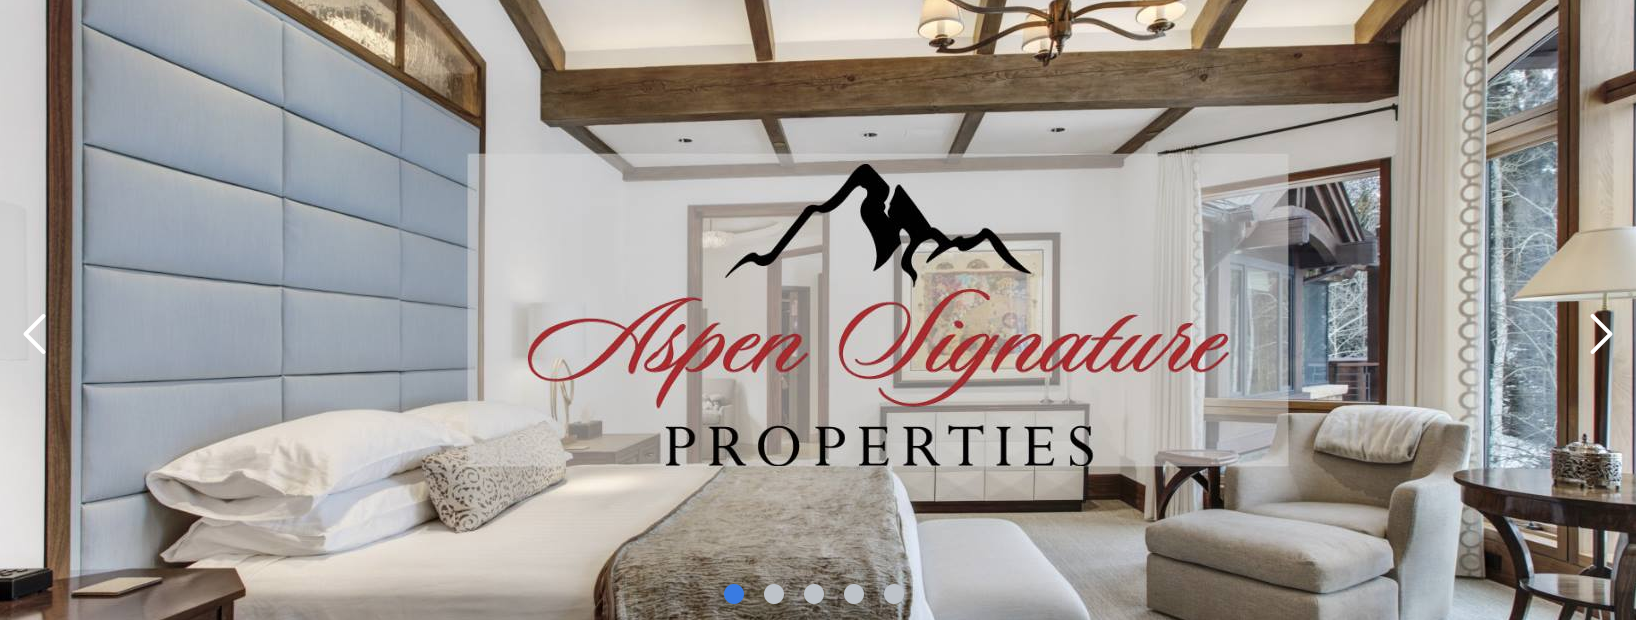 Aspen Signature Properties - real estate cover photos - tips from the pros